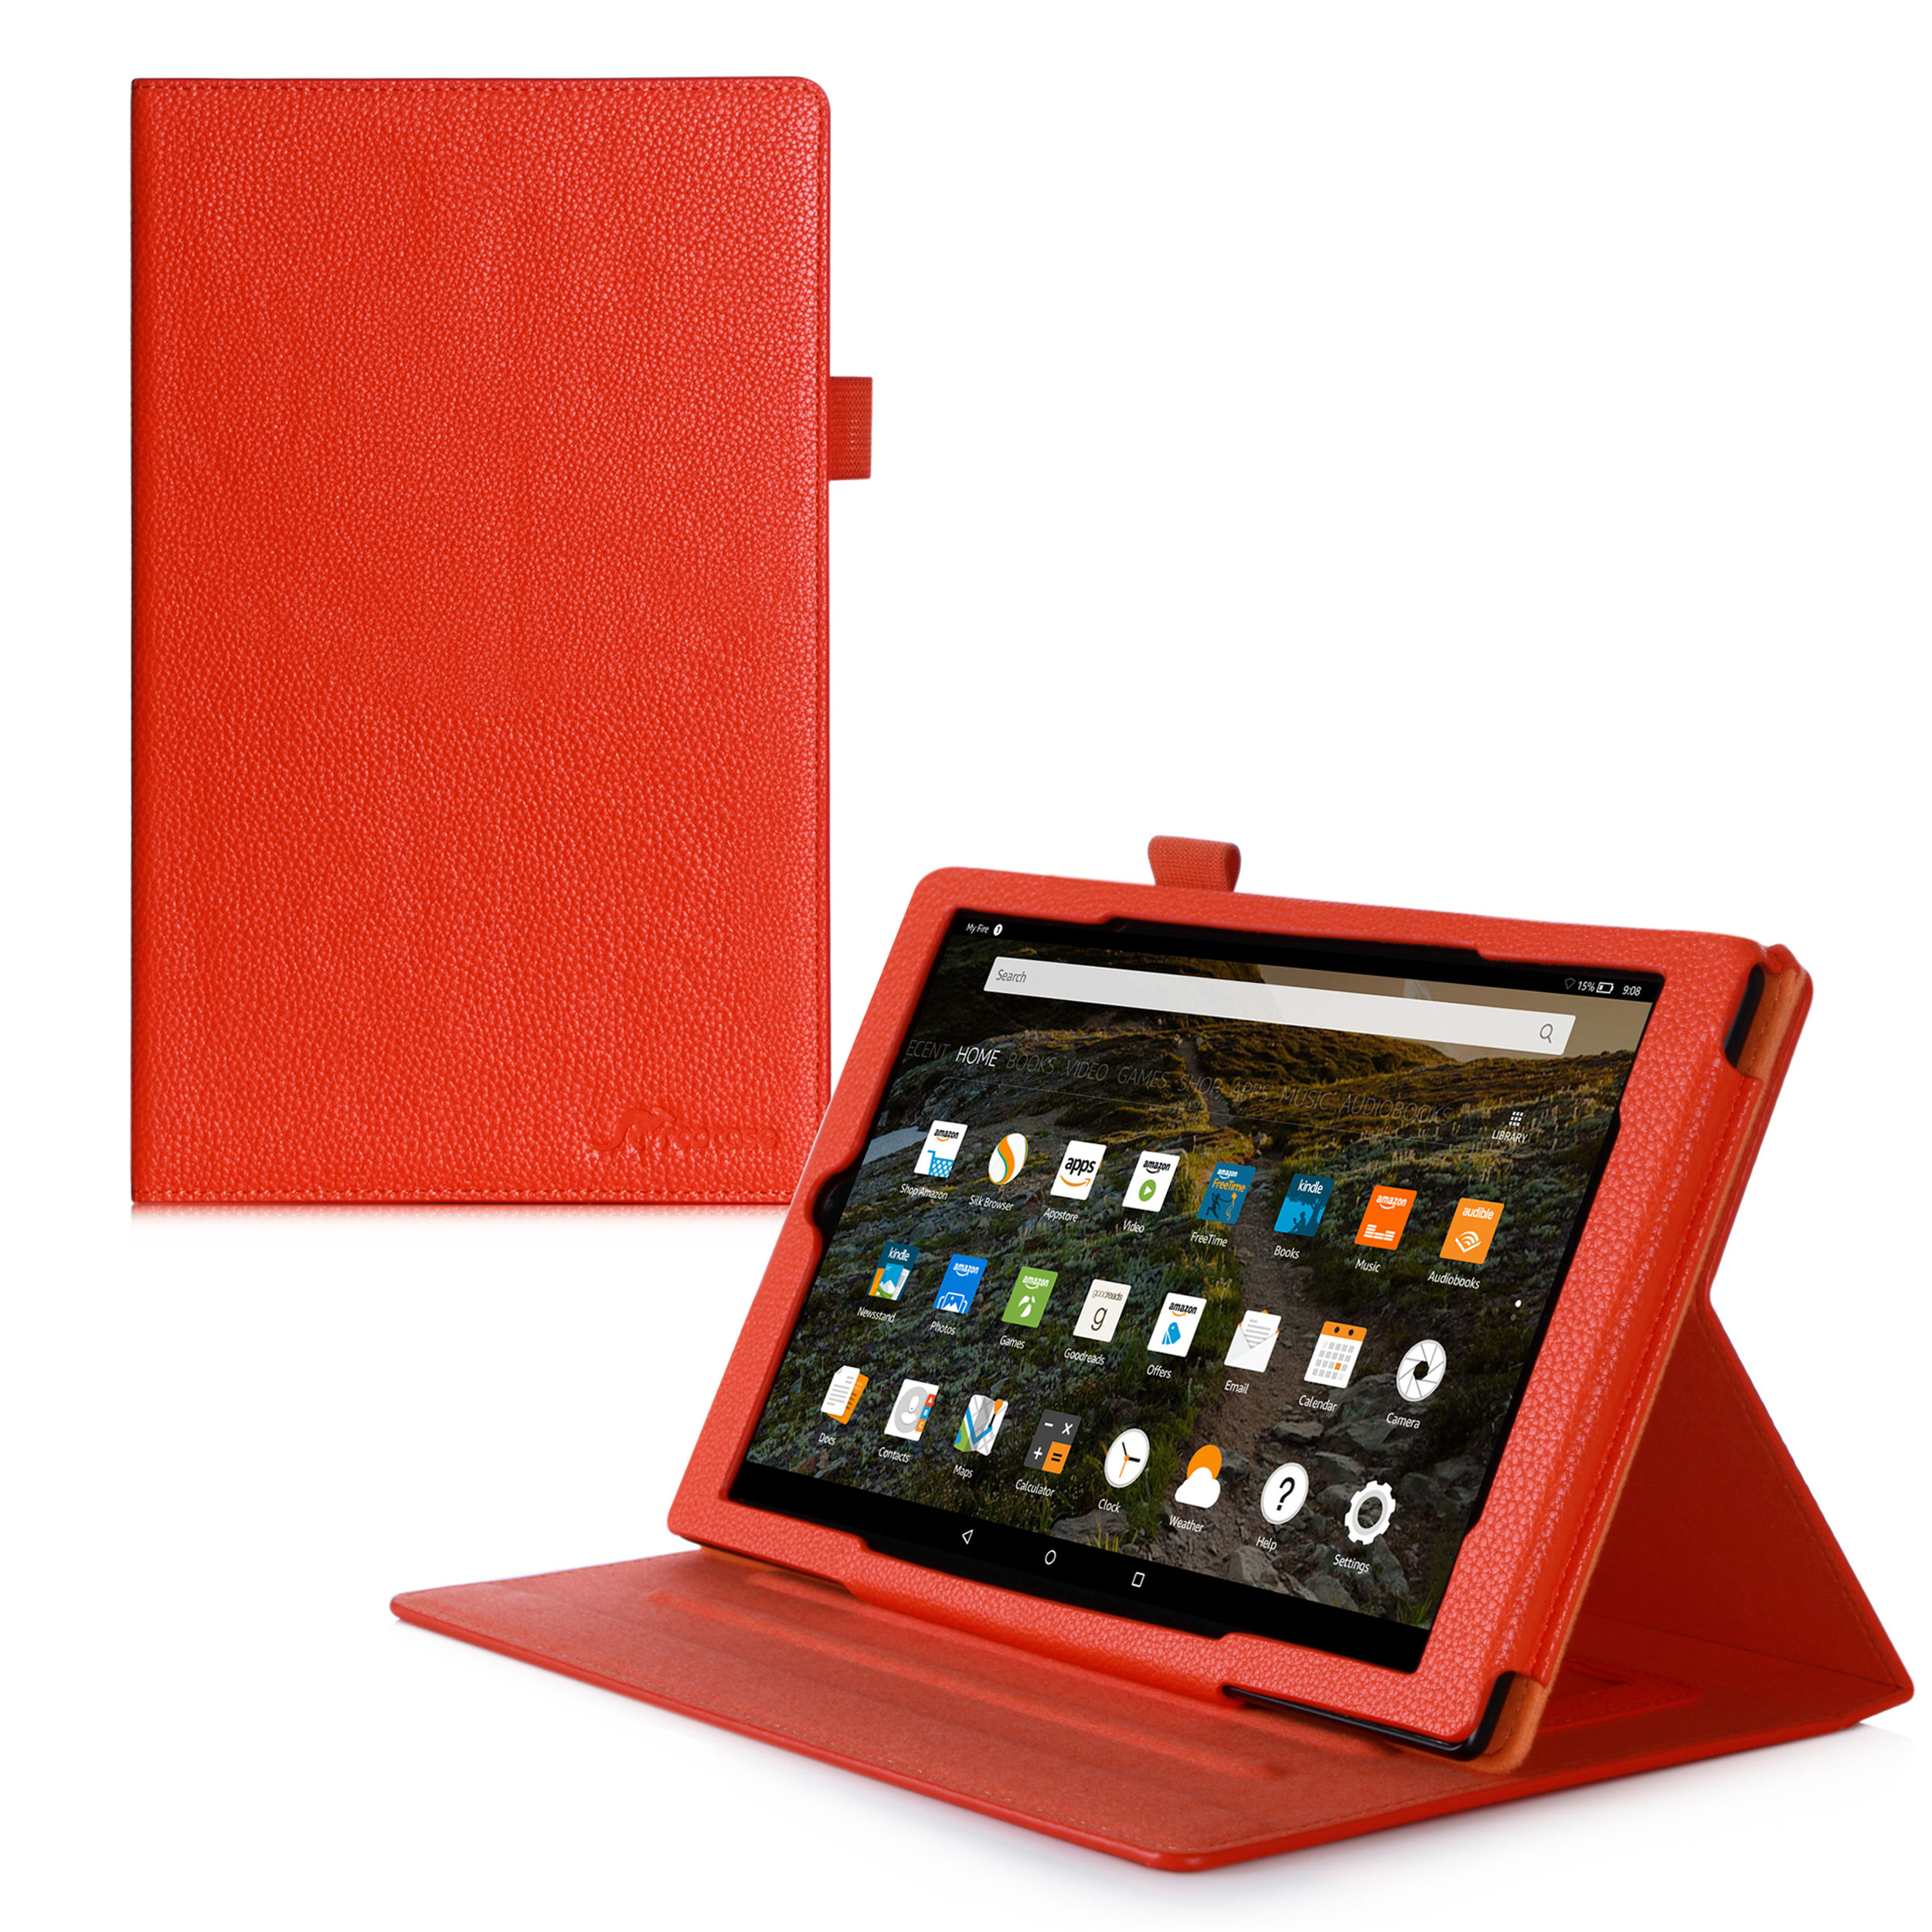 rooCASE Amazon Fire HD 10 (2015 Model ONLY) Dual View Leather Case Cover Auto Wake / Sleep with Stand